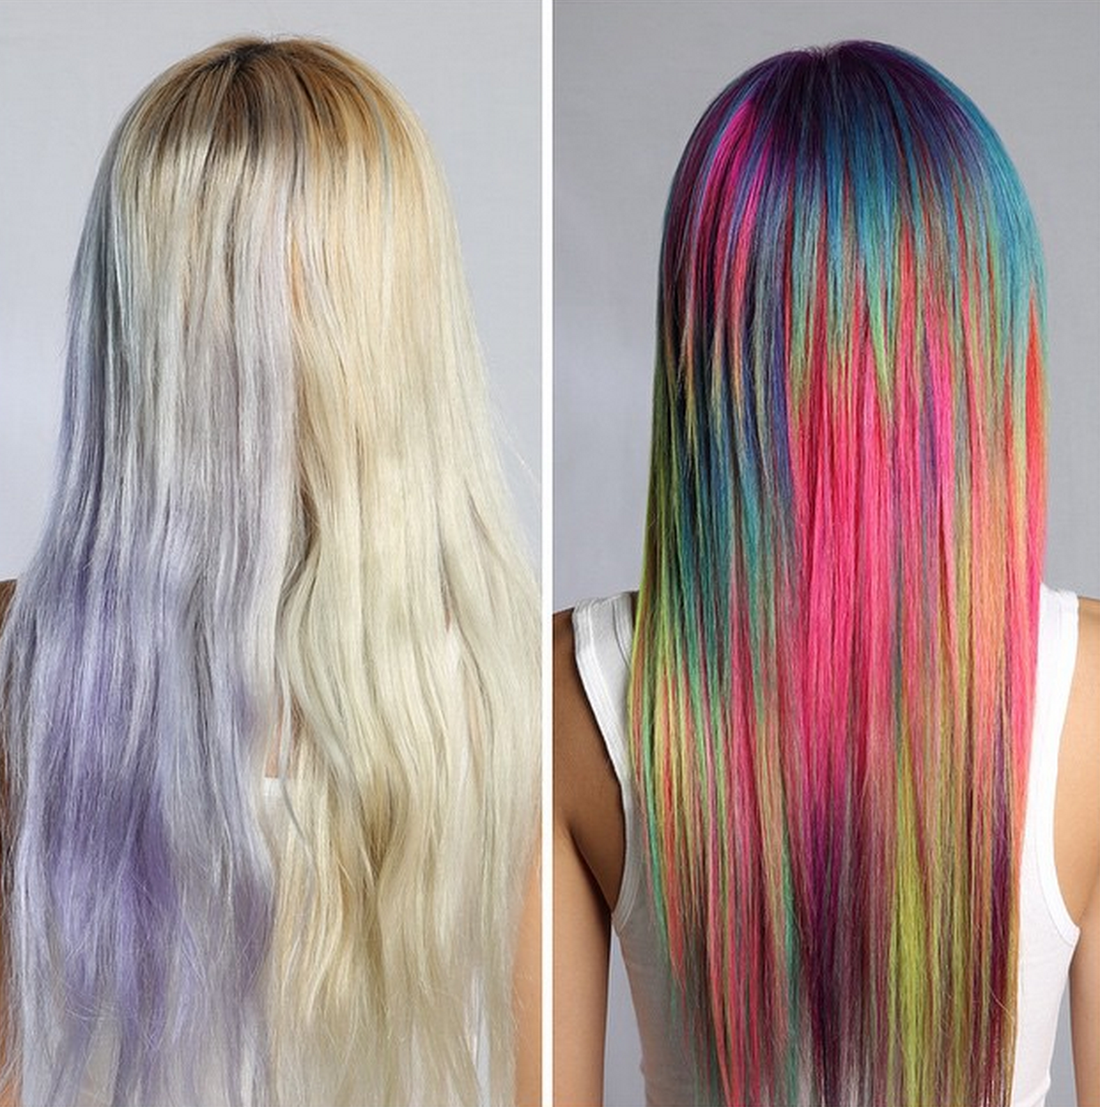 Sand art hair is the new hair color trend you need to try